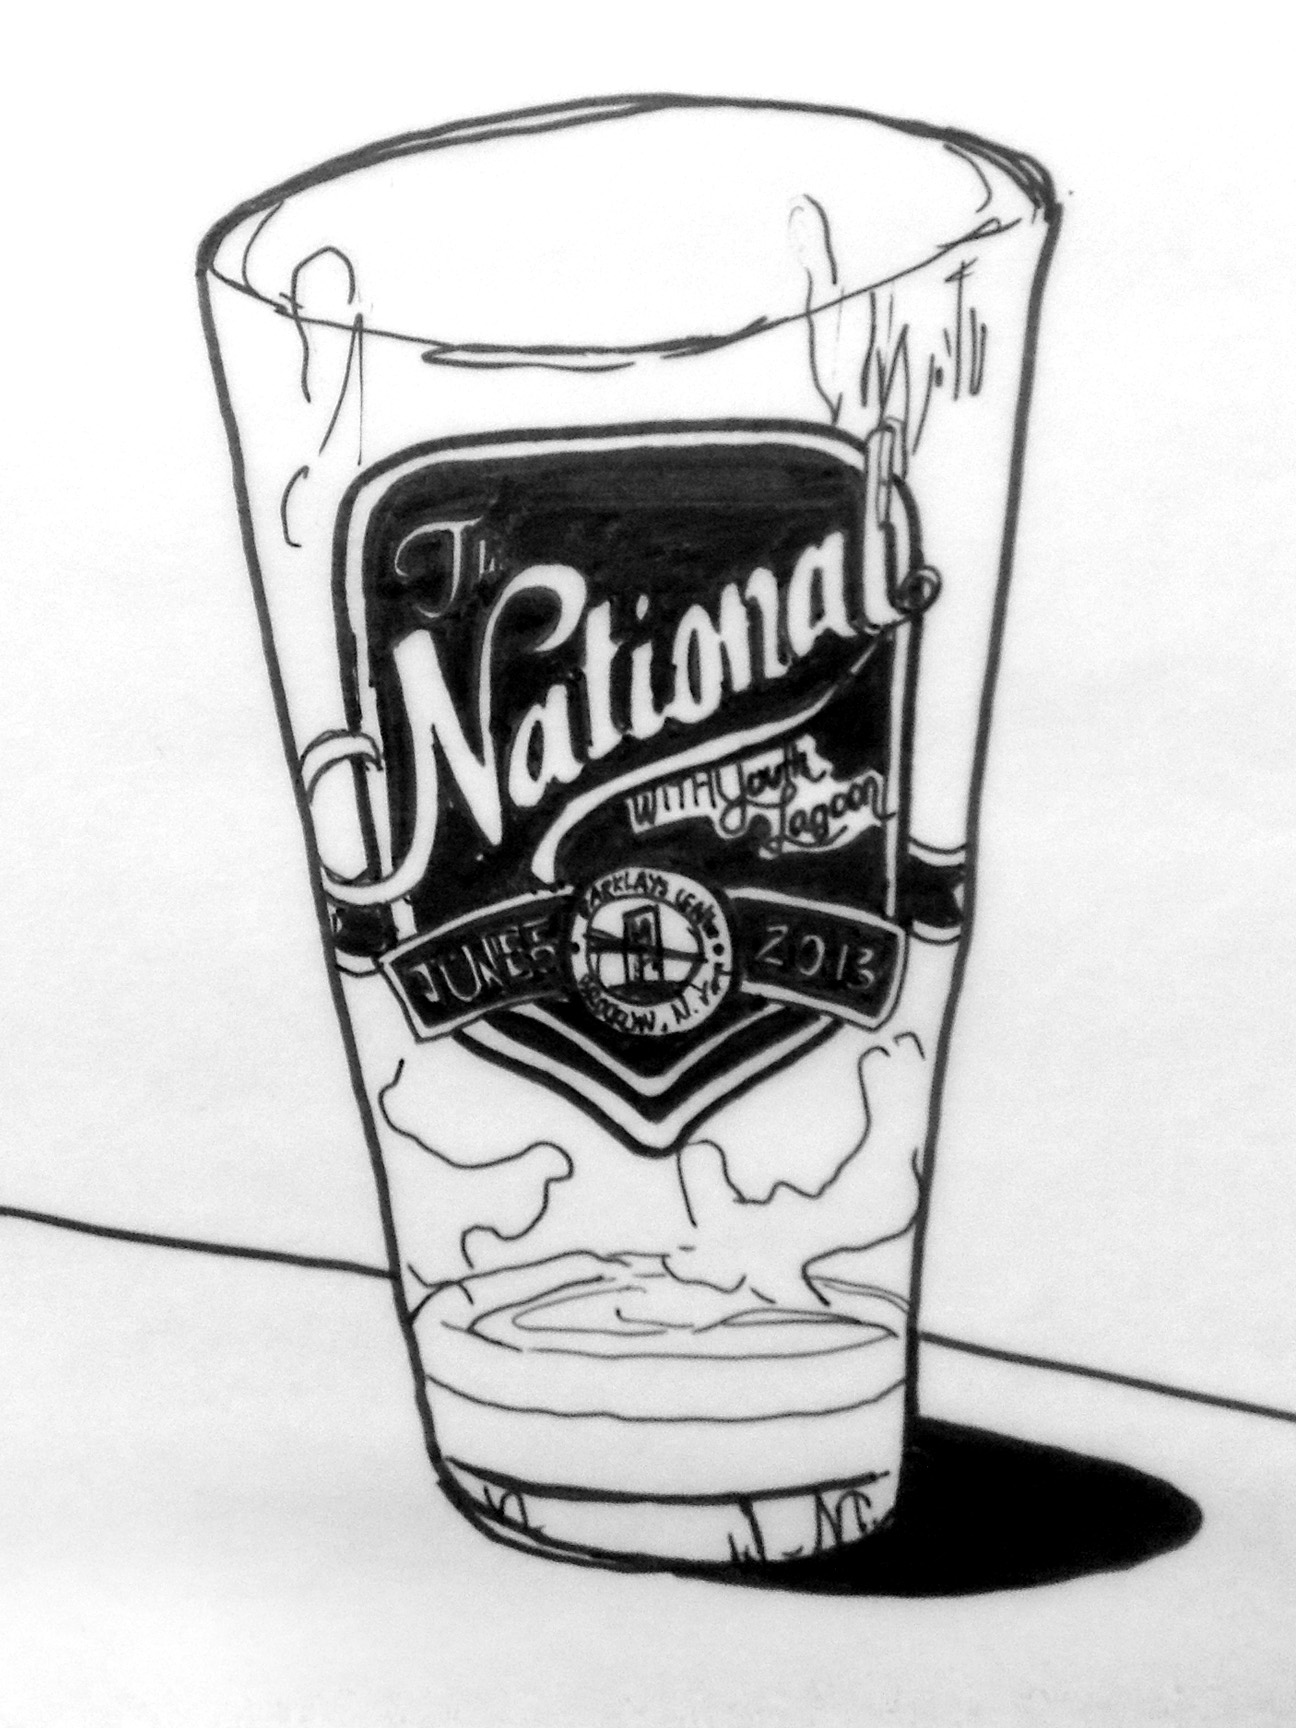 The National : UPDATED 2/23 - image 2 - student project